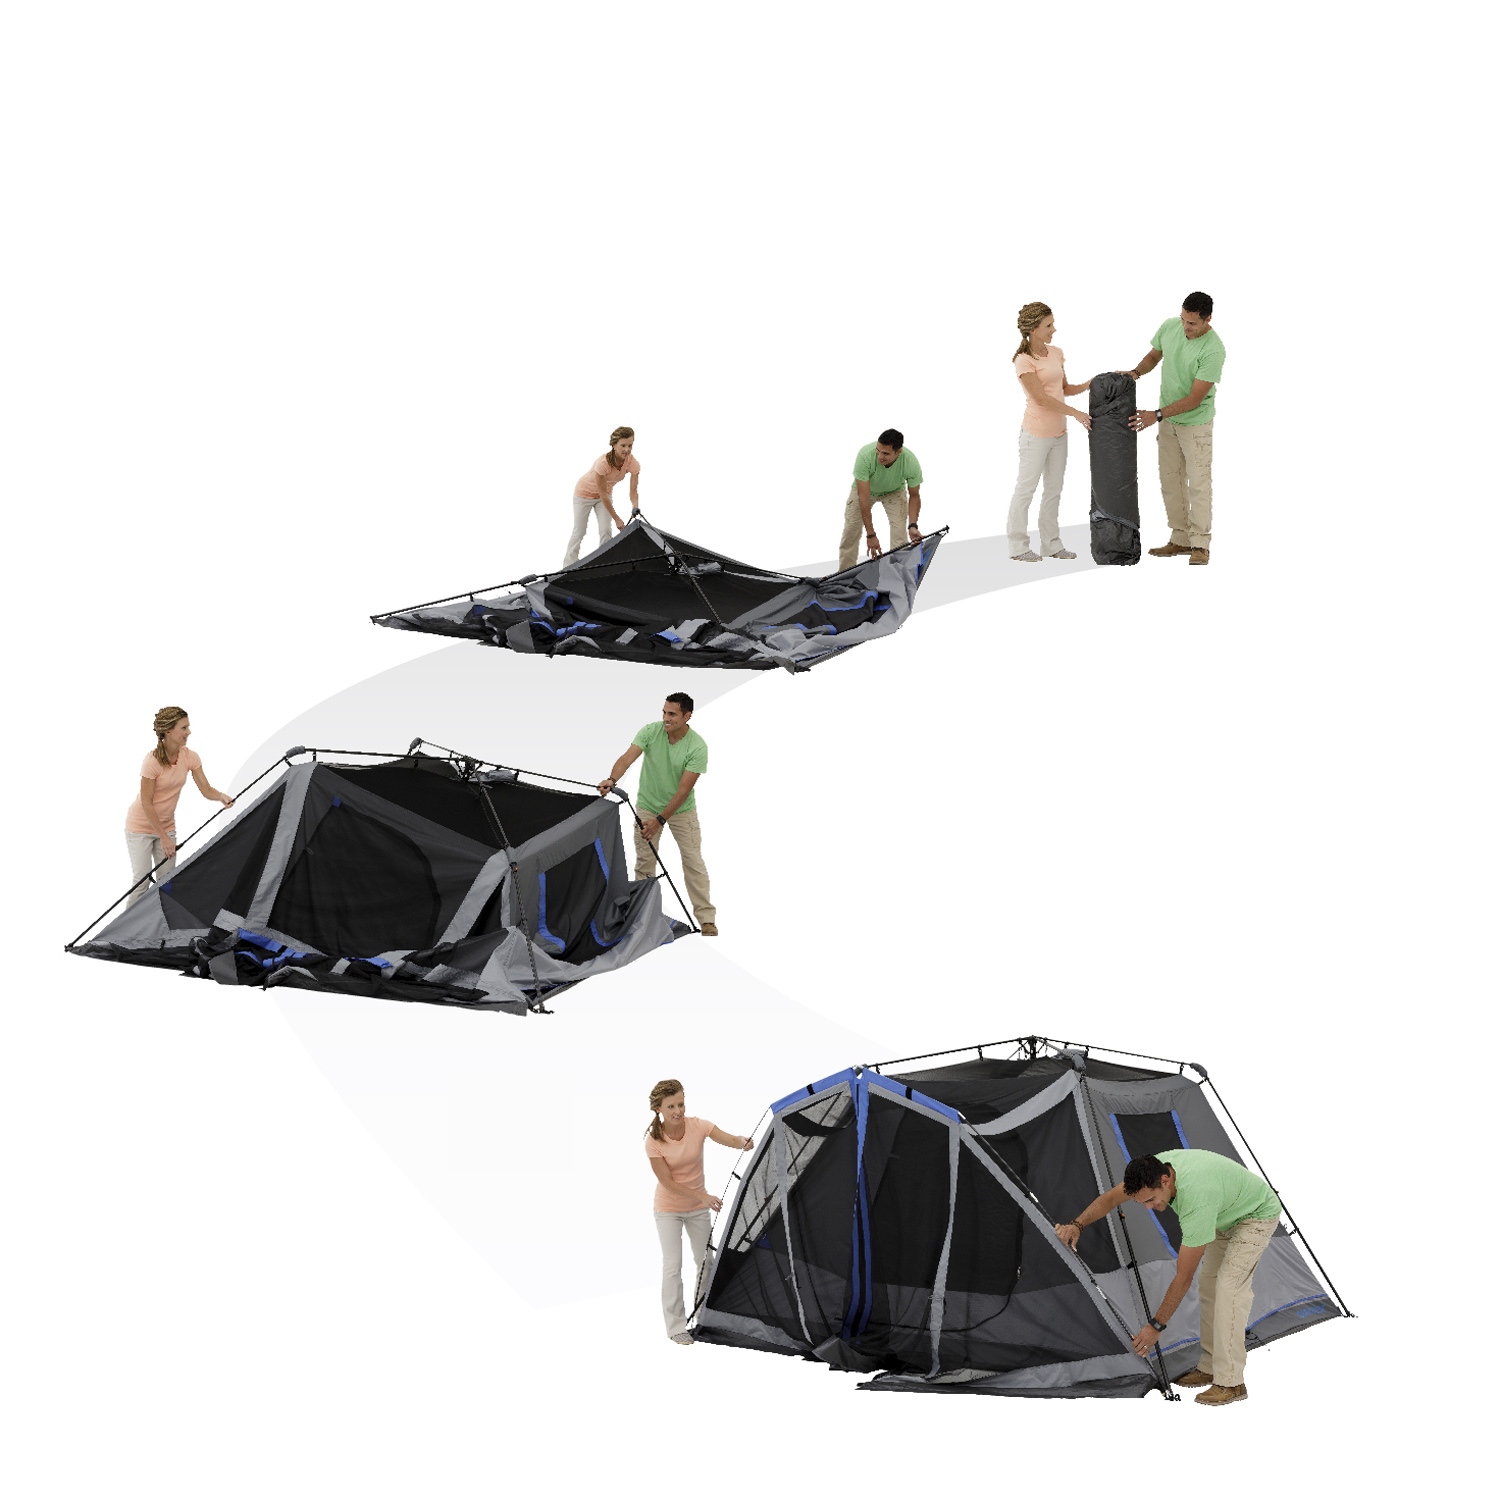 Details about Ozark Trail 6-Person Instant Darkrest Cabin Tent with light